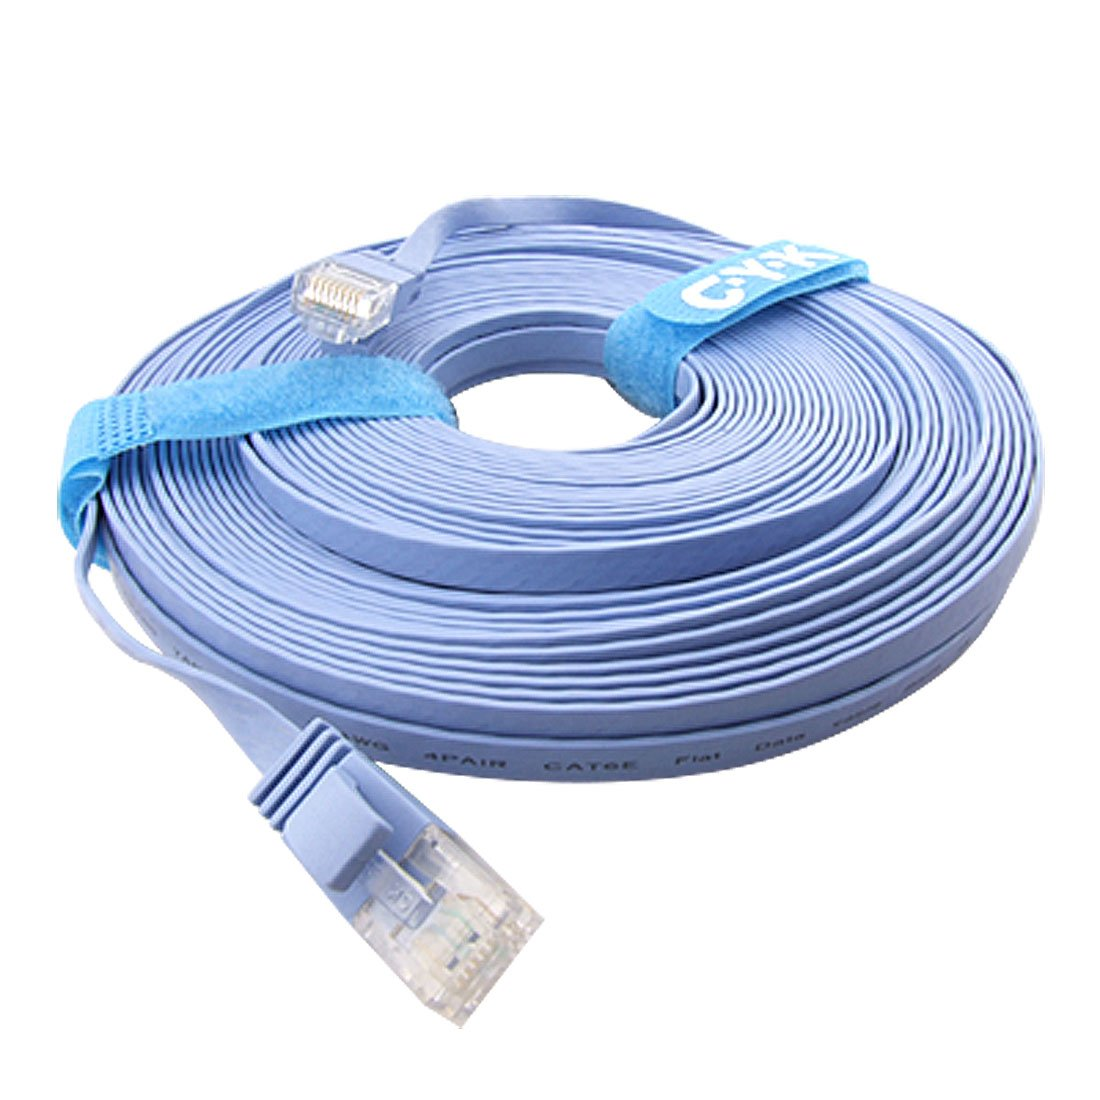 GTFS-20M CAT6 Flat UTP Ethernet Network Cable RJ45 Patch LAN Cord Blue